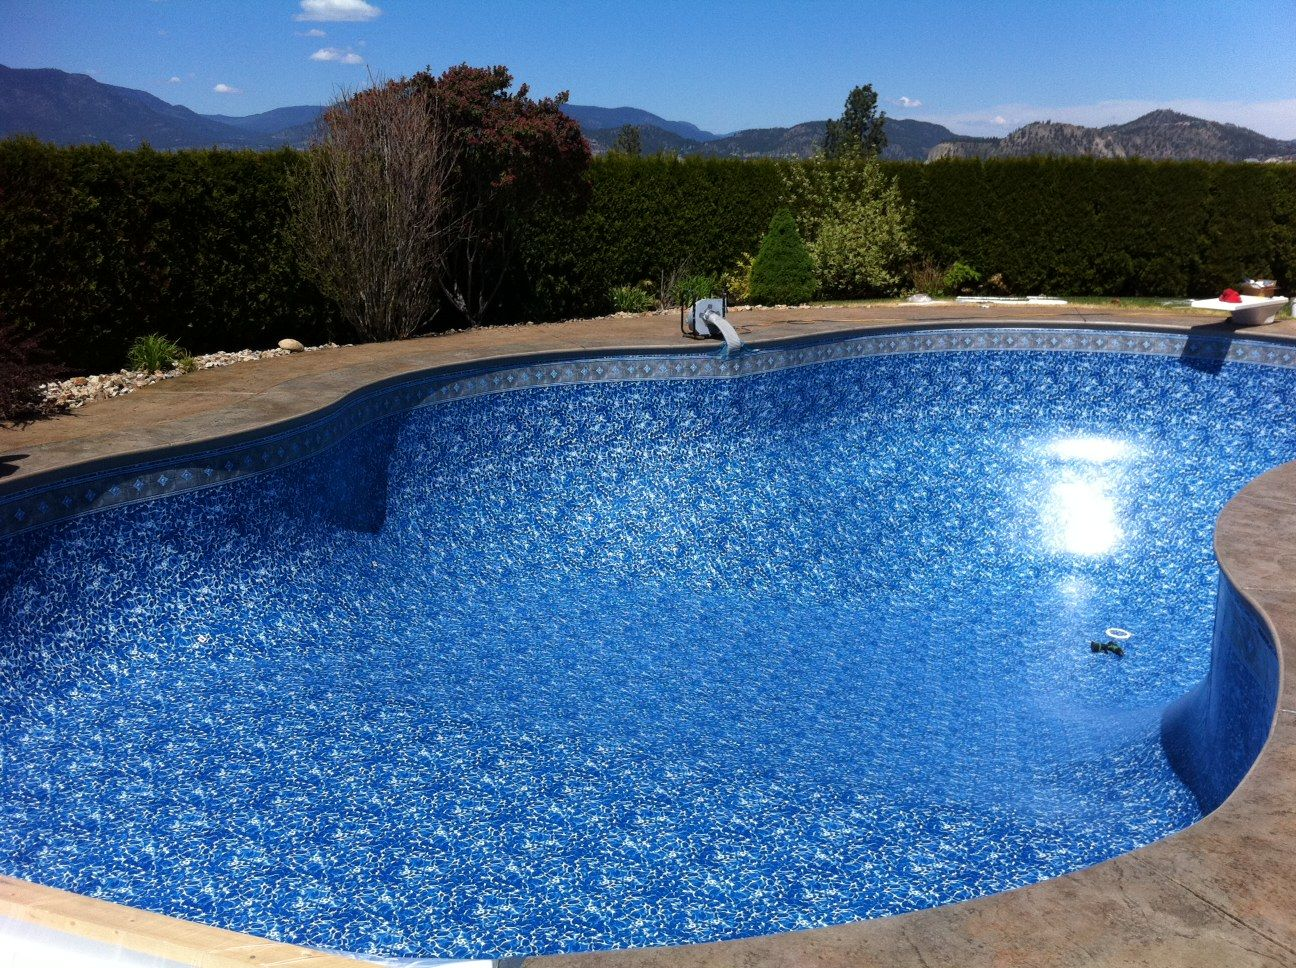 Best 25 fiberglass inground pools ideas on pinterest for In ground pool coping ideas